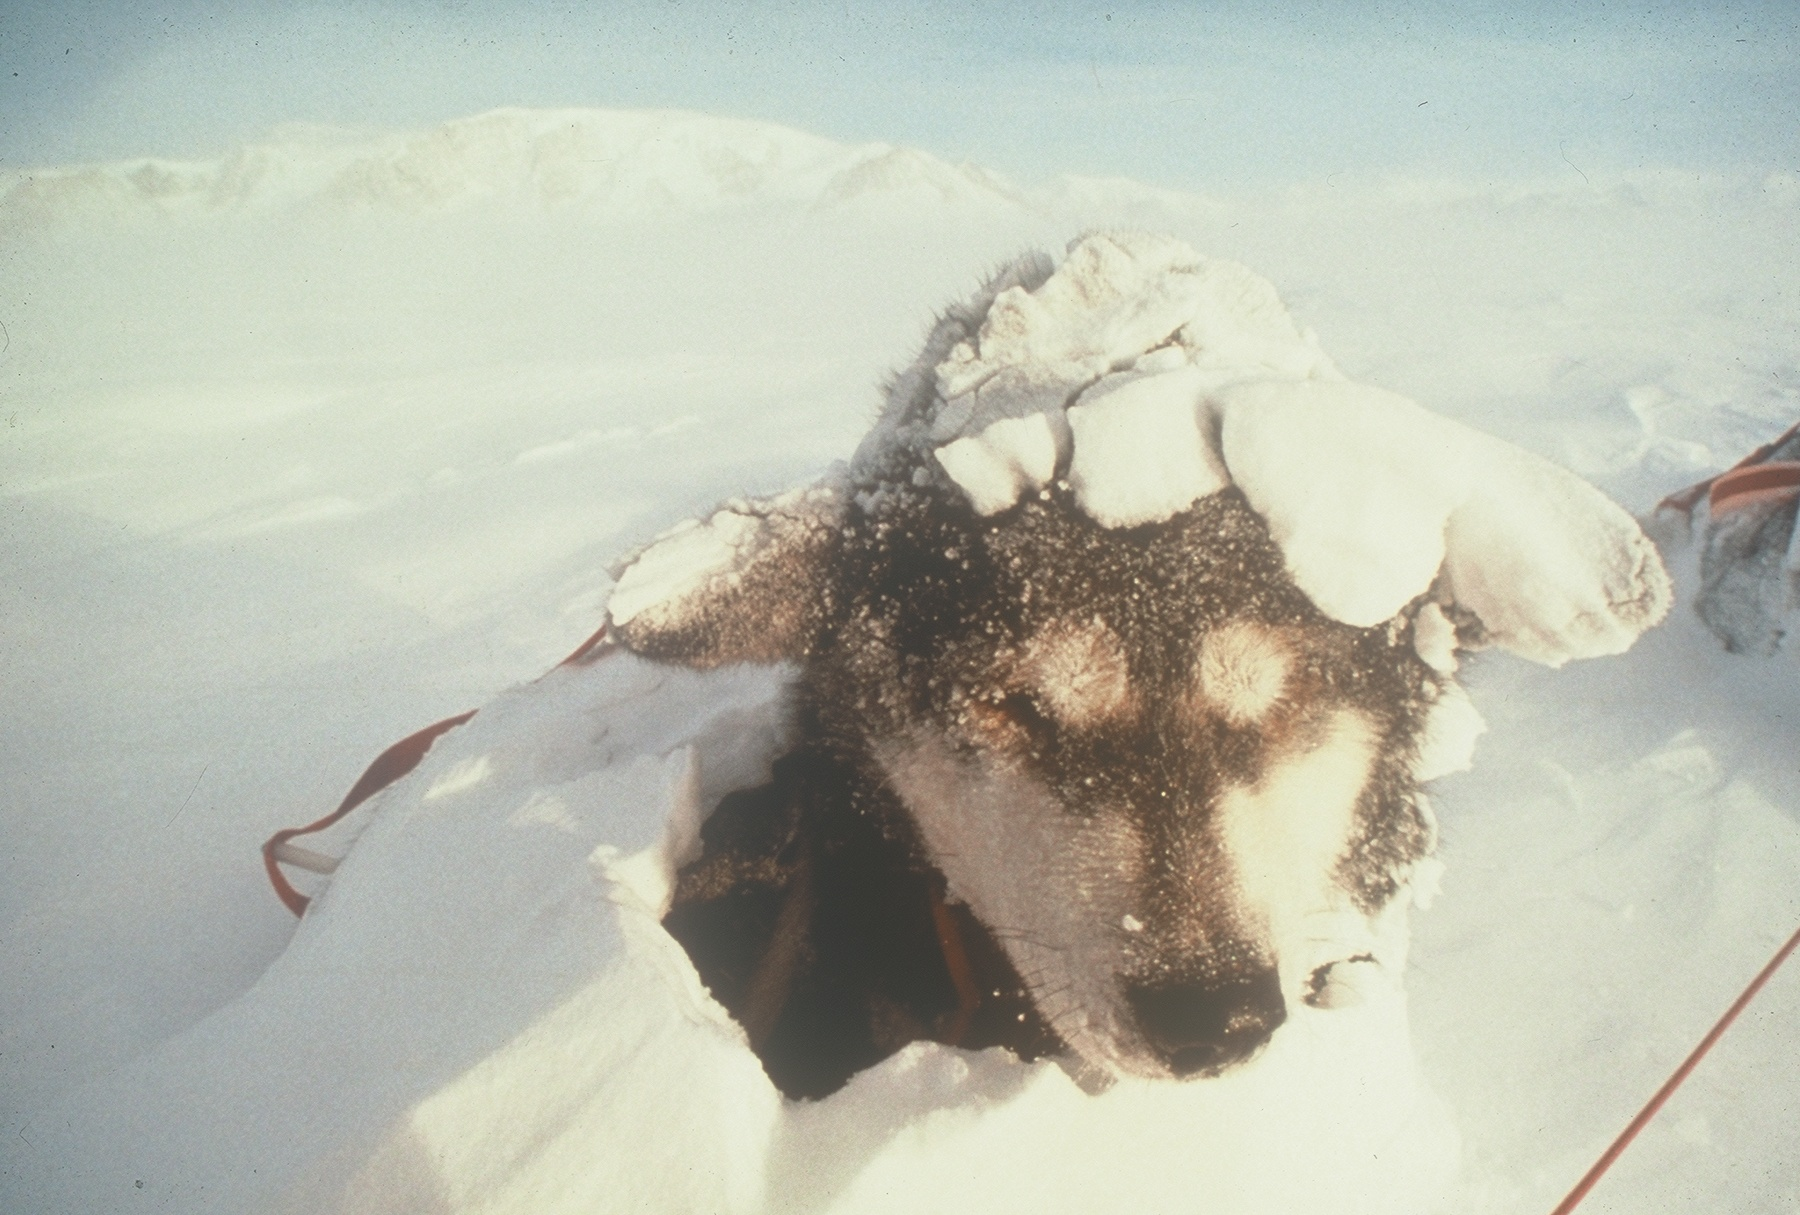 Dogs kept off the wind and cold under the snow.